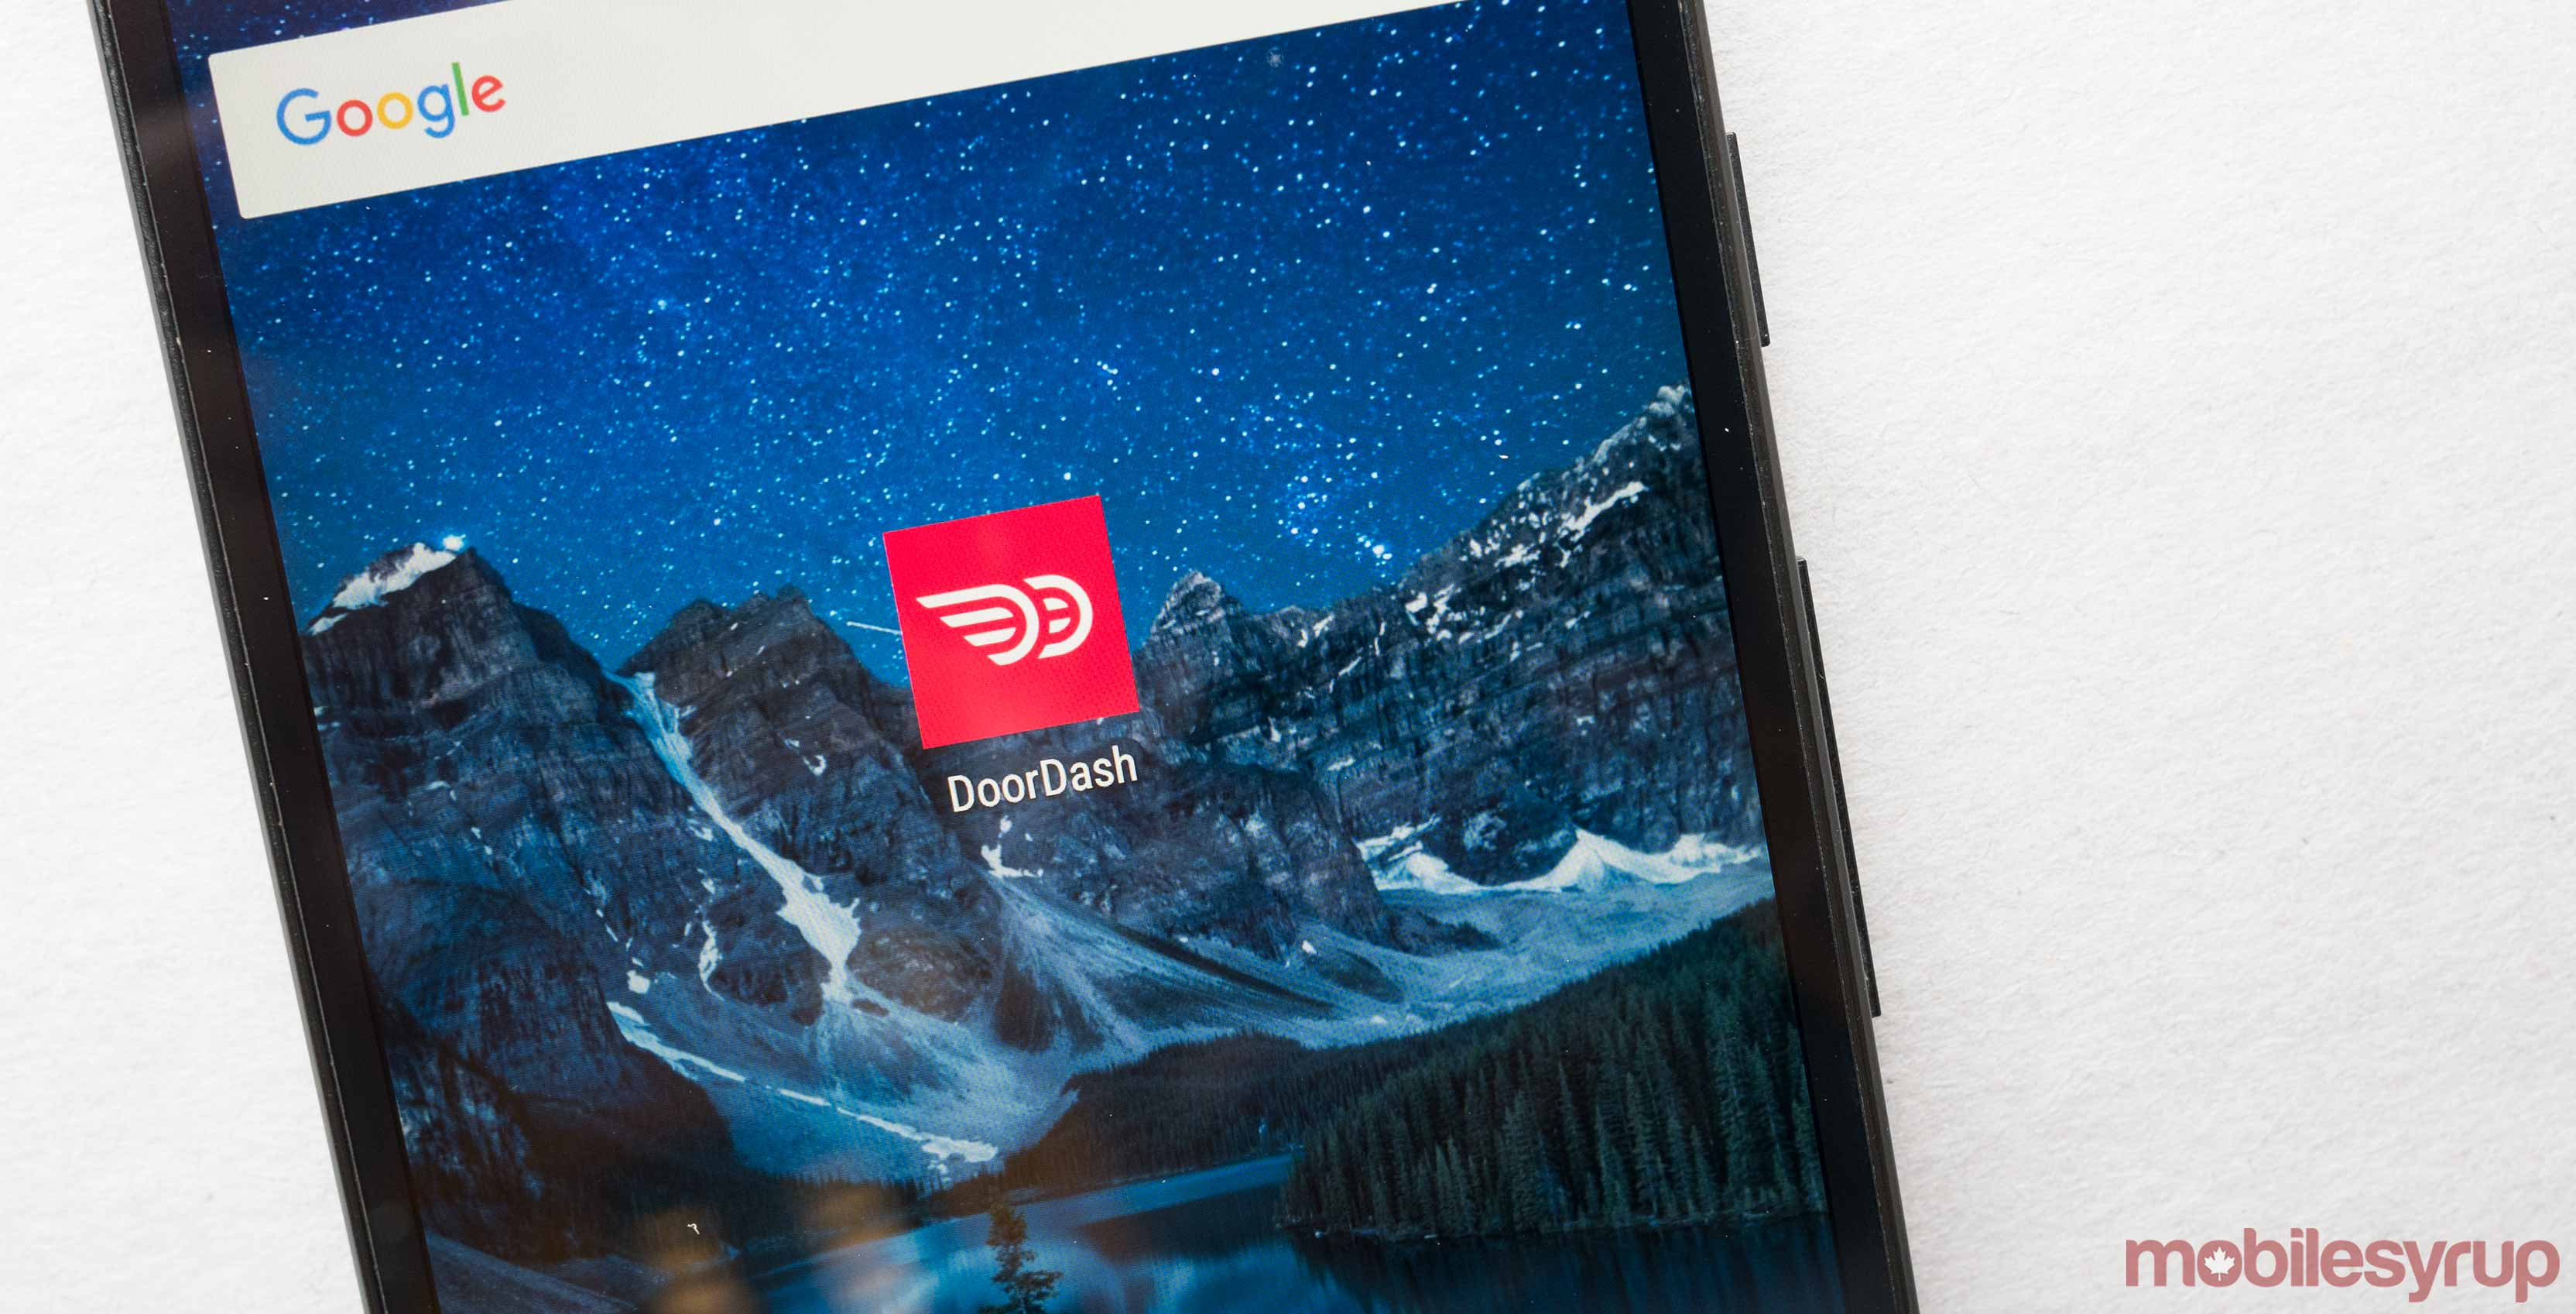 DoorDash food delivery app launches in the Ottawa area